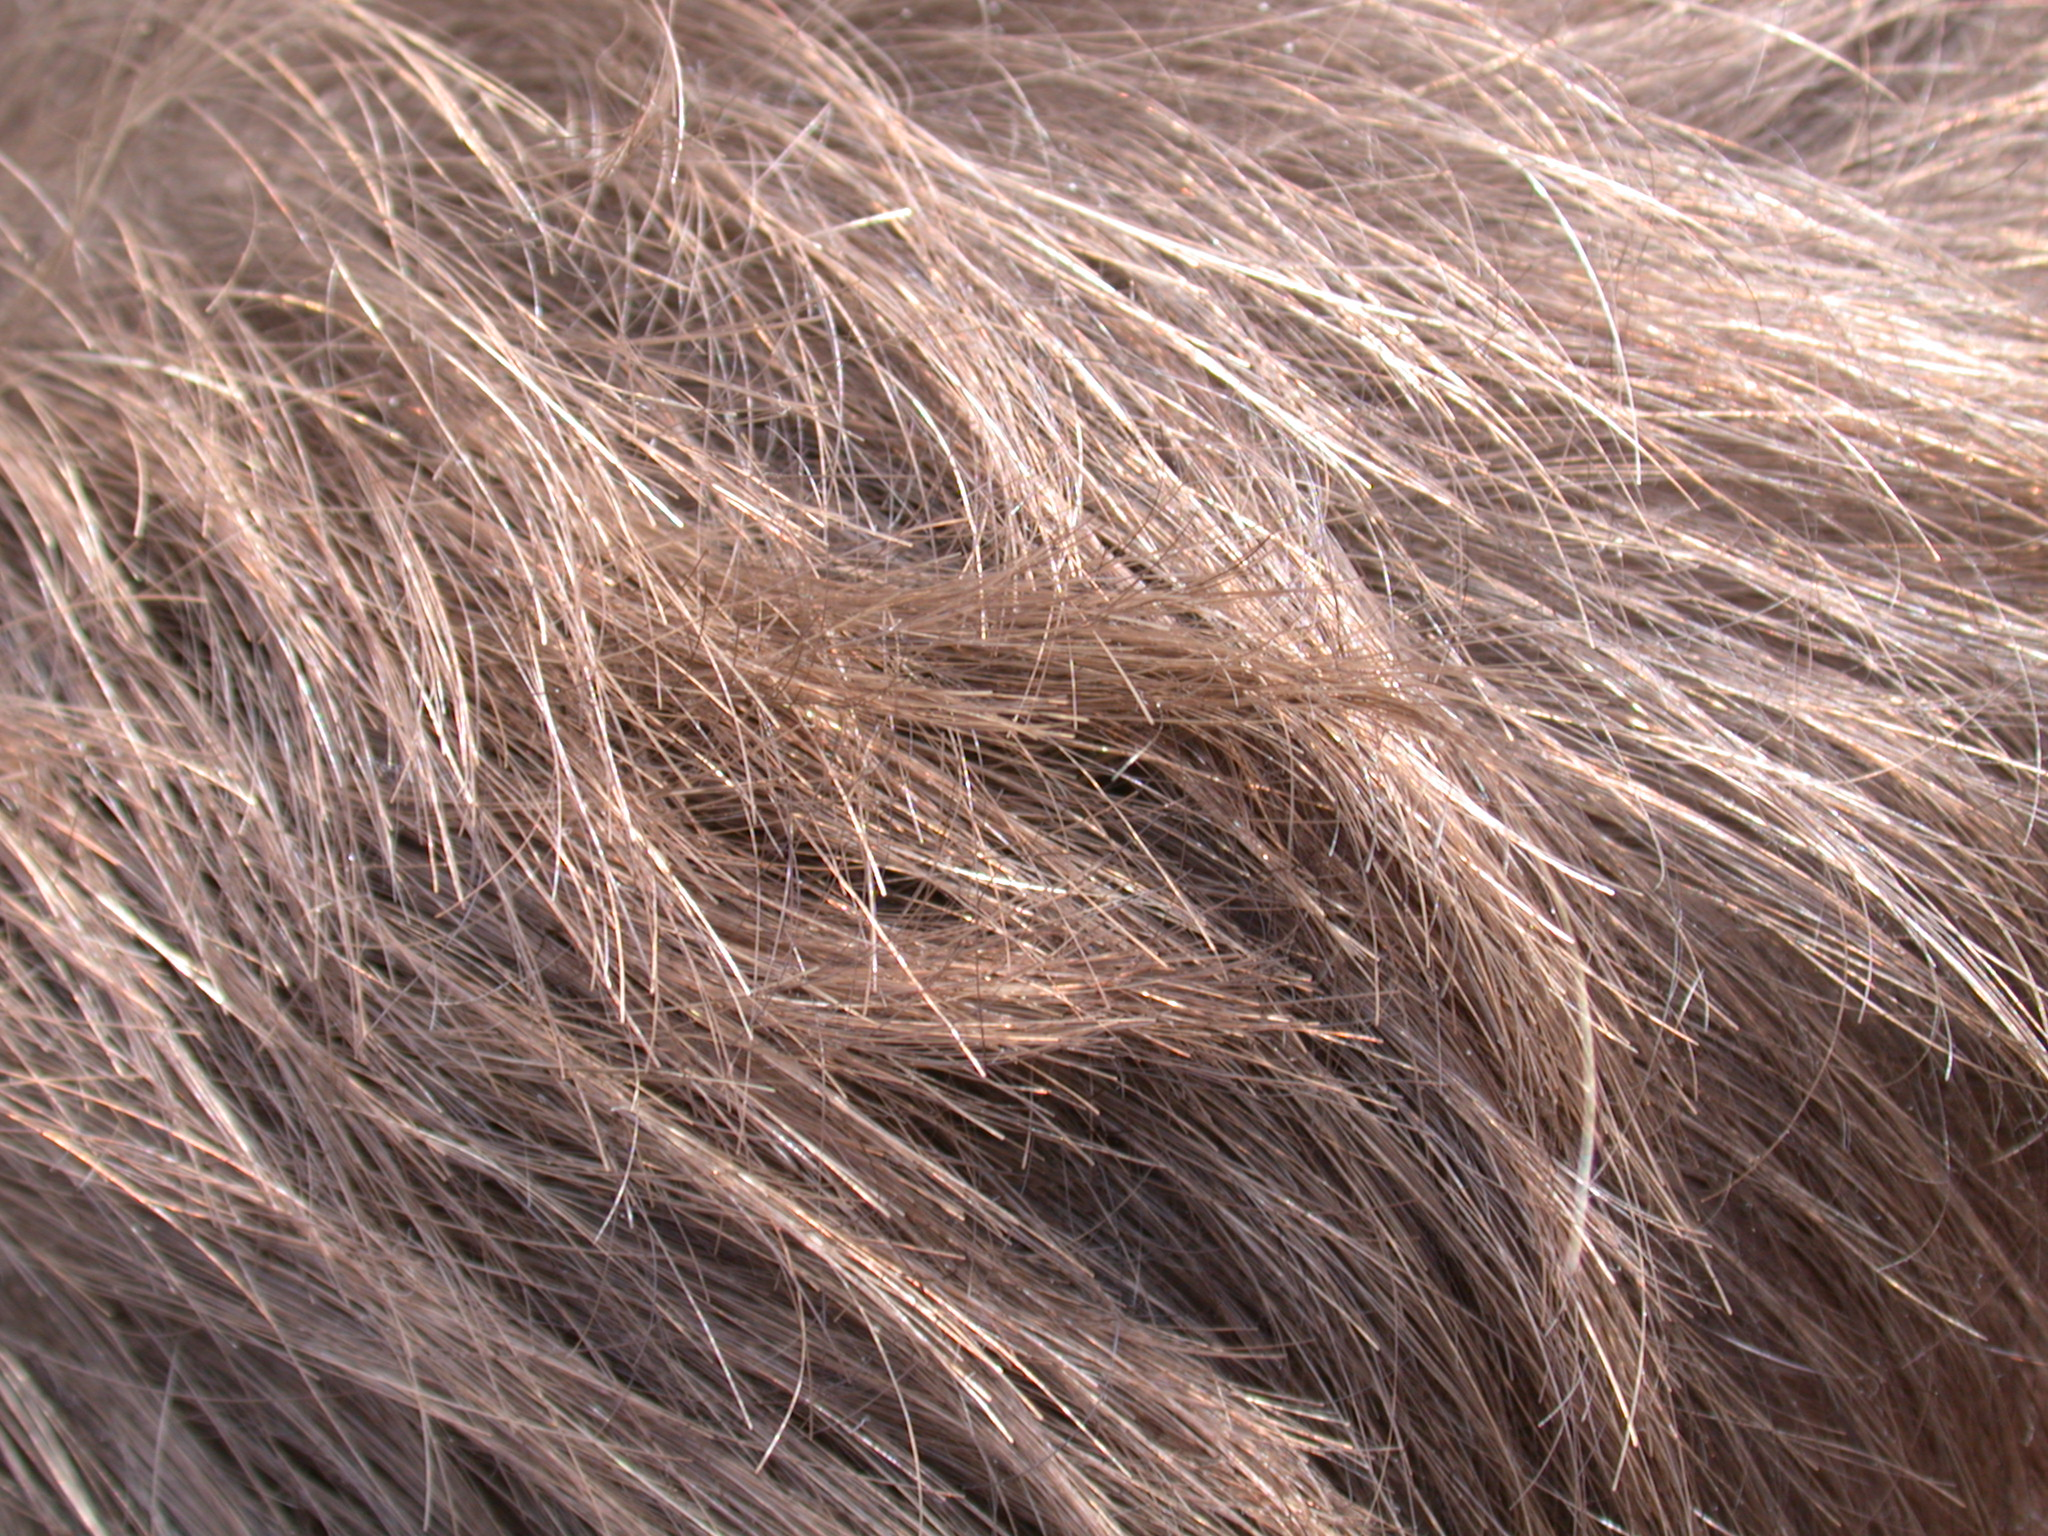 human brown hair textures free texture royalty-free